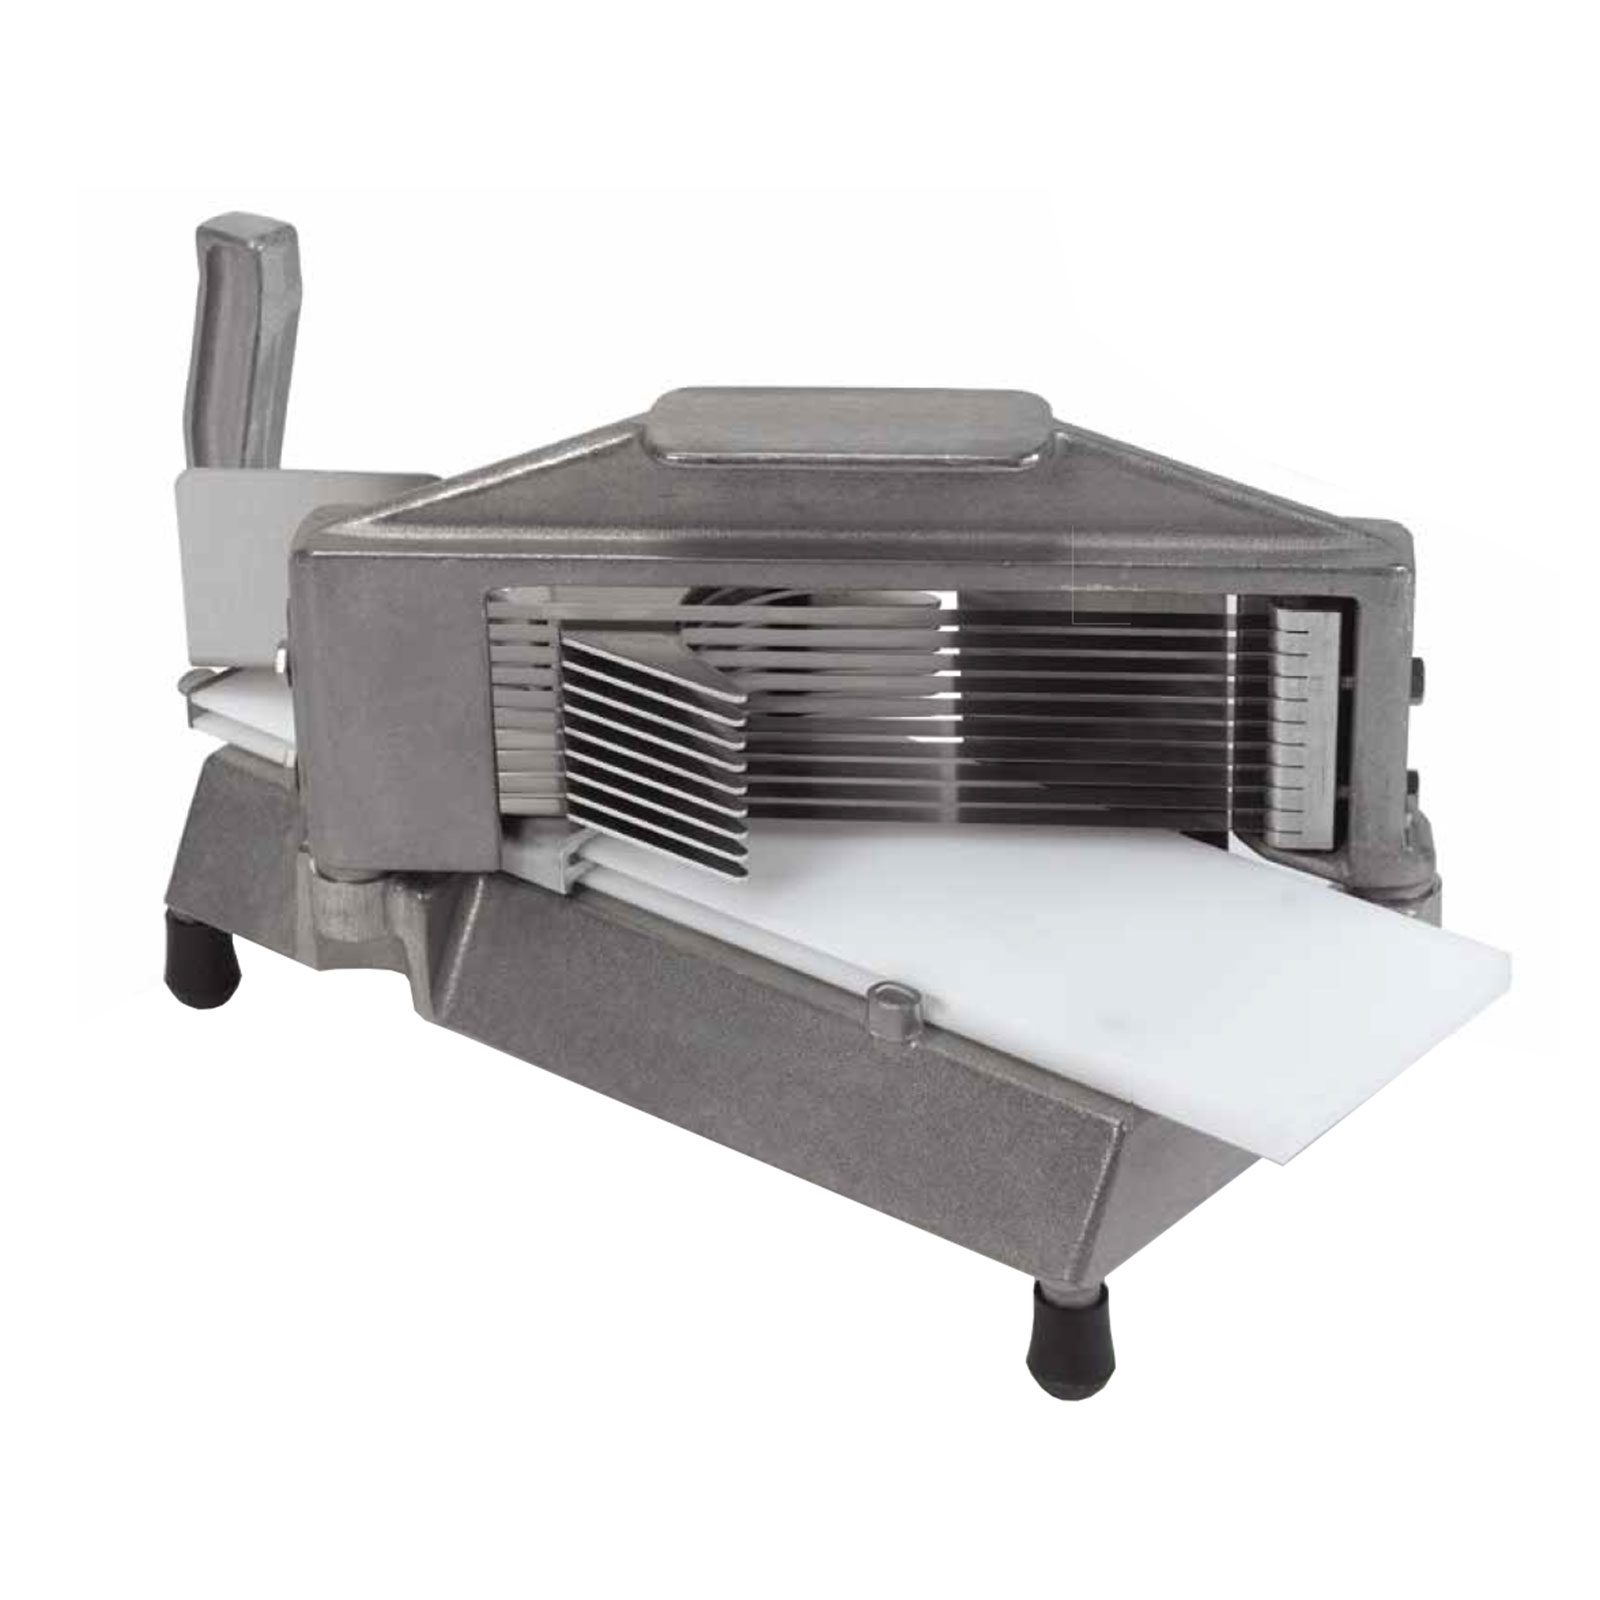 Nemco Food Equipment 55600-3 slicer, tomato